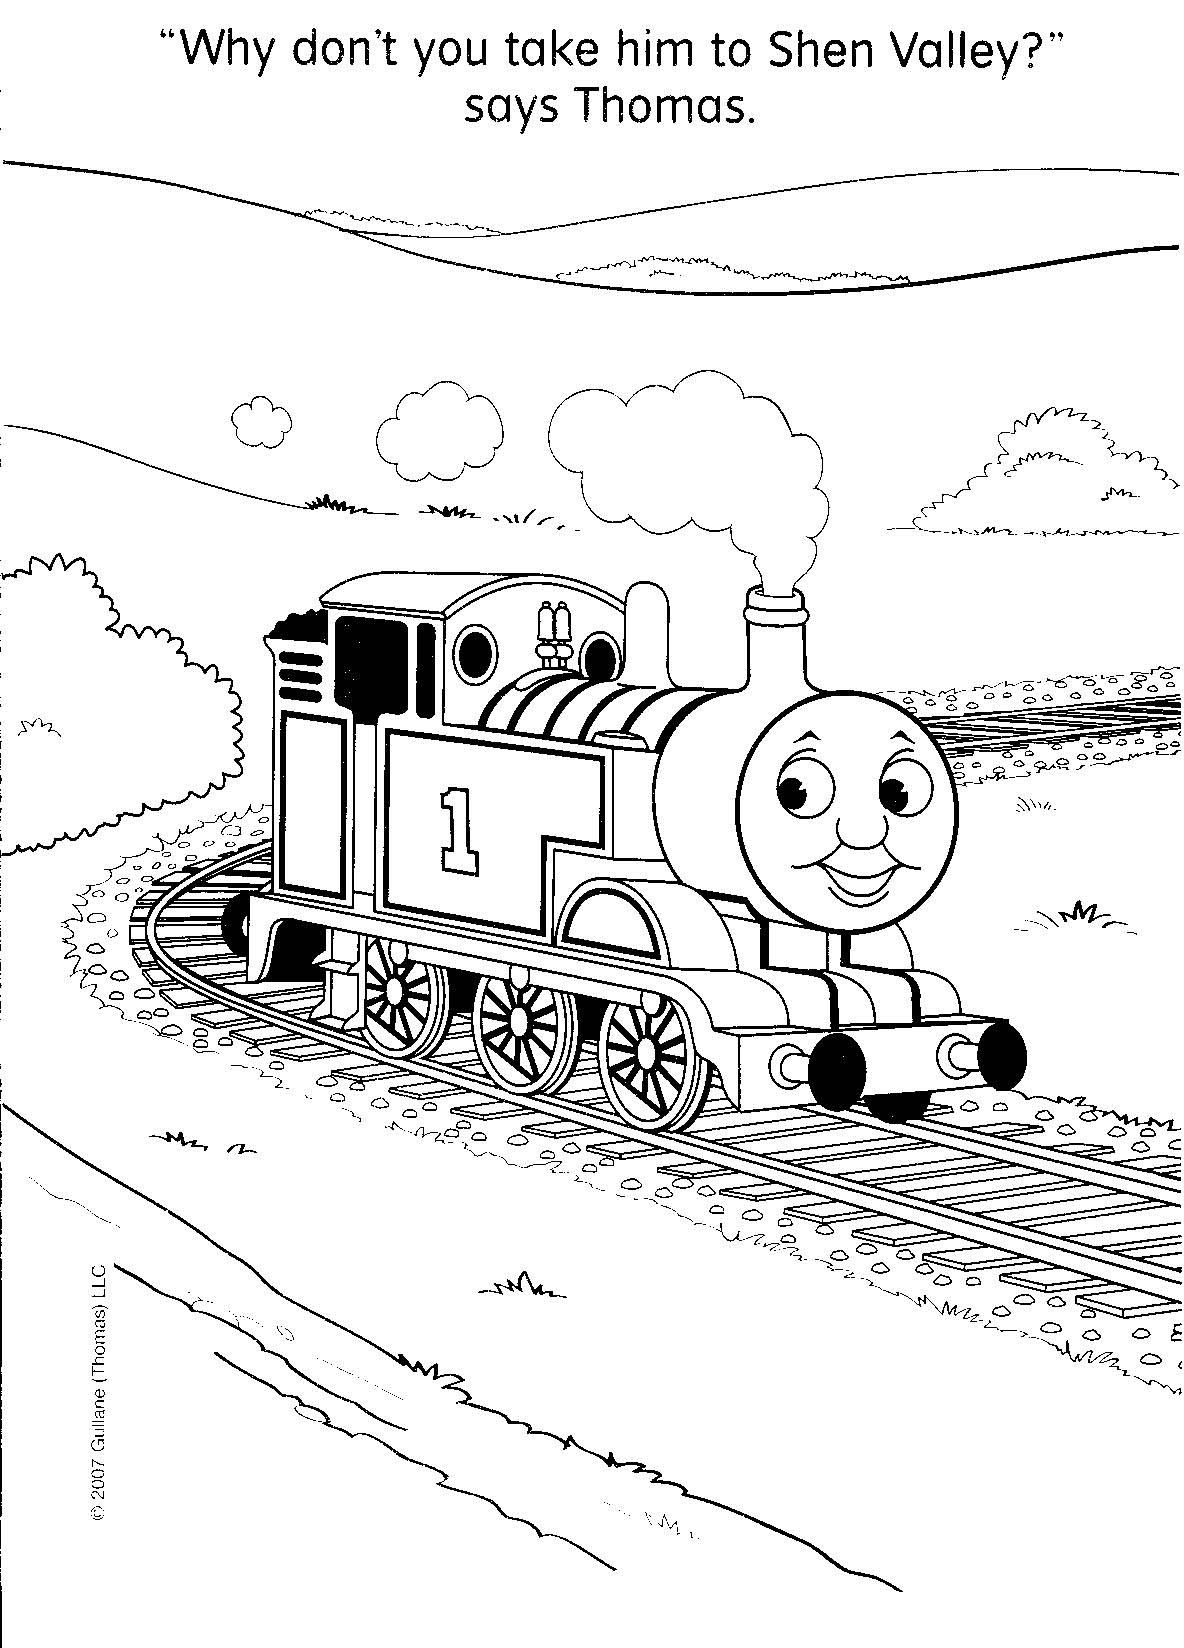 thomas the train color page - Google Search | I like to color ...